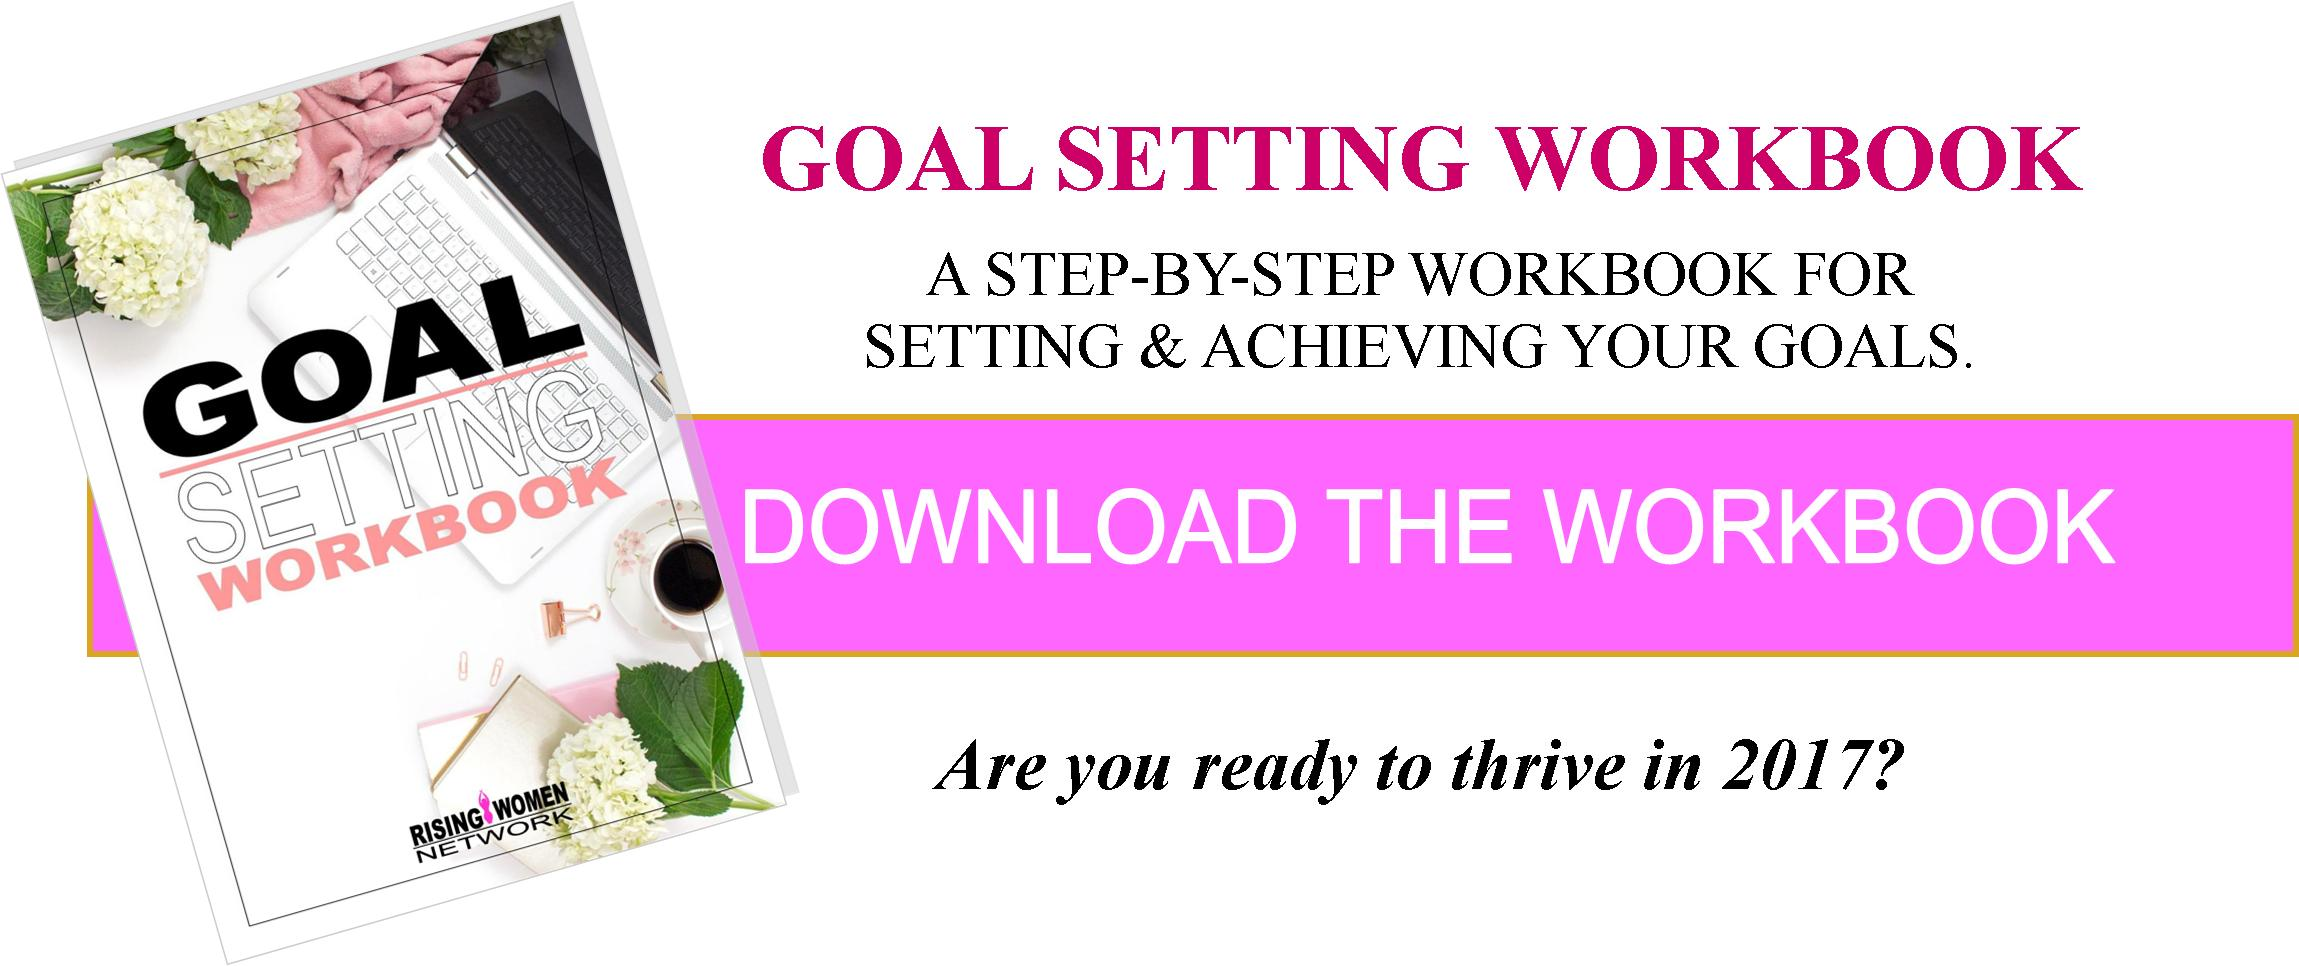 step action plan to crush your goals this year rising women some of the goals you listed take you longer than a year and that is okay compare your accomplishments from last year and align your dreams and goals